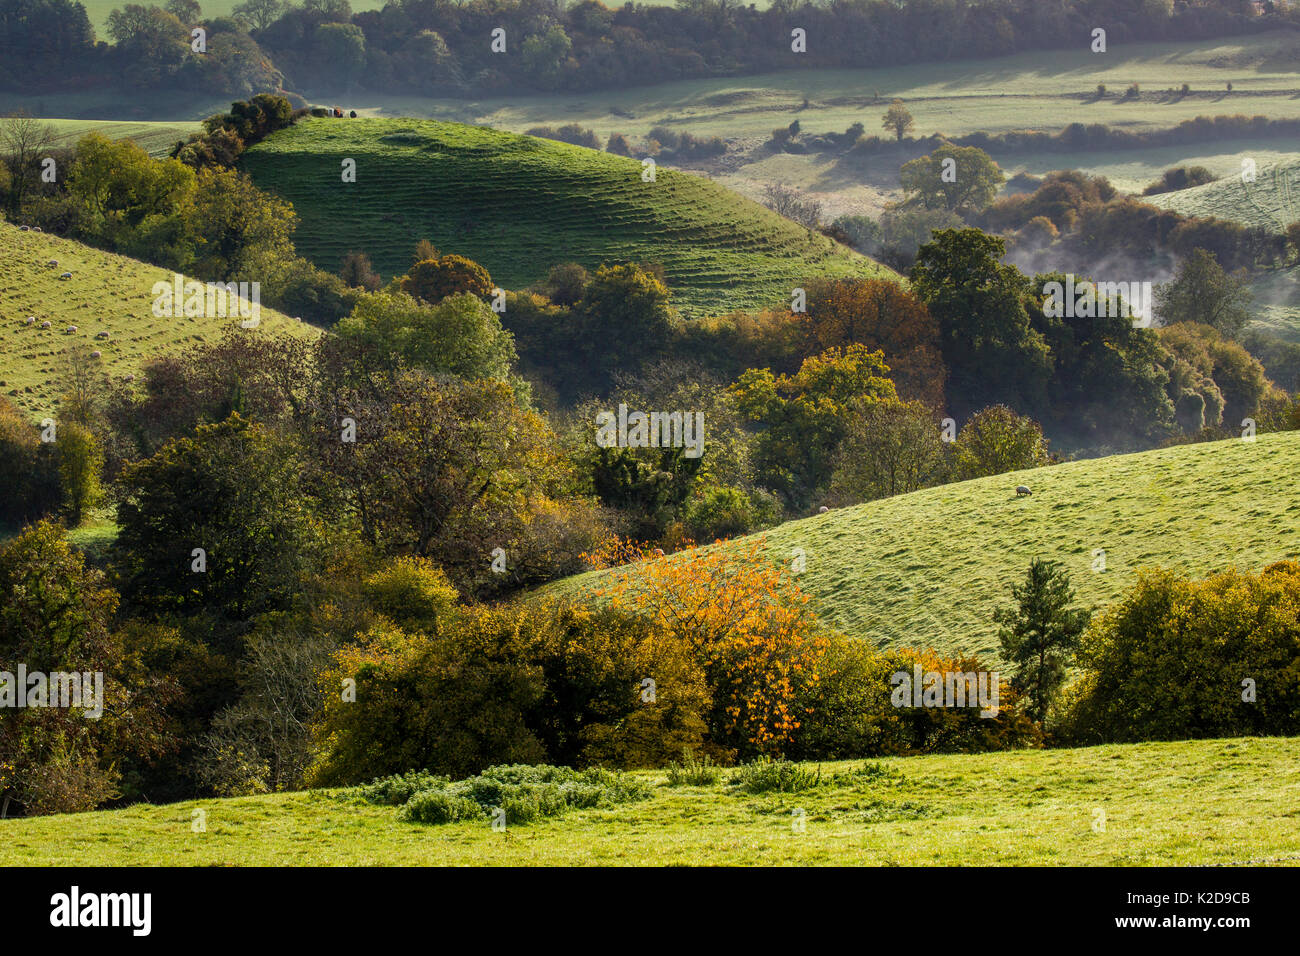 Autumn view towards St. Catherines Valley from Cold Ashton, Gloucestershire. St. Catherine's Valley is a biological Site of Special Scientific Interest. October 2015. - Stock Image